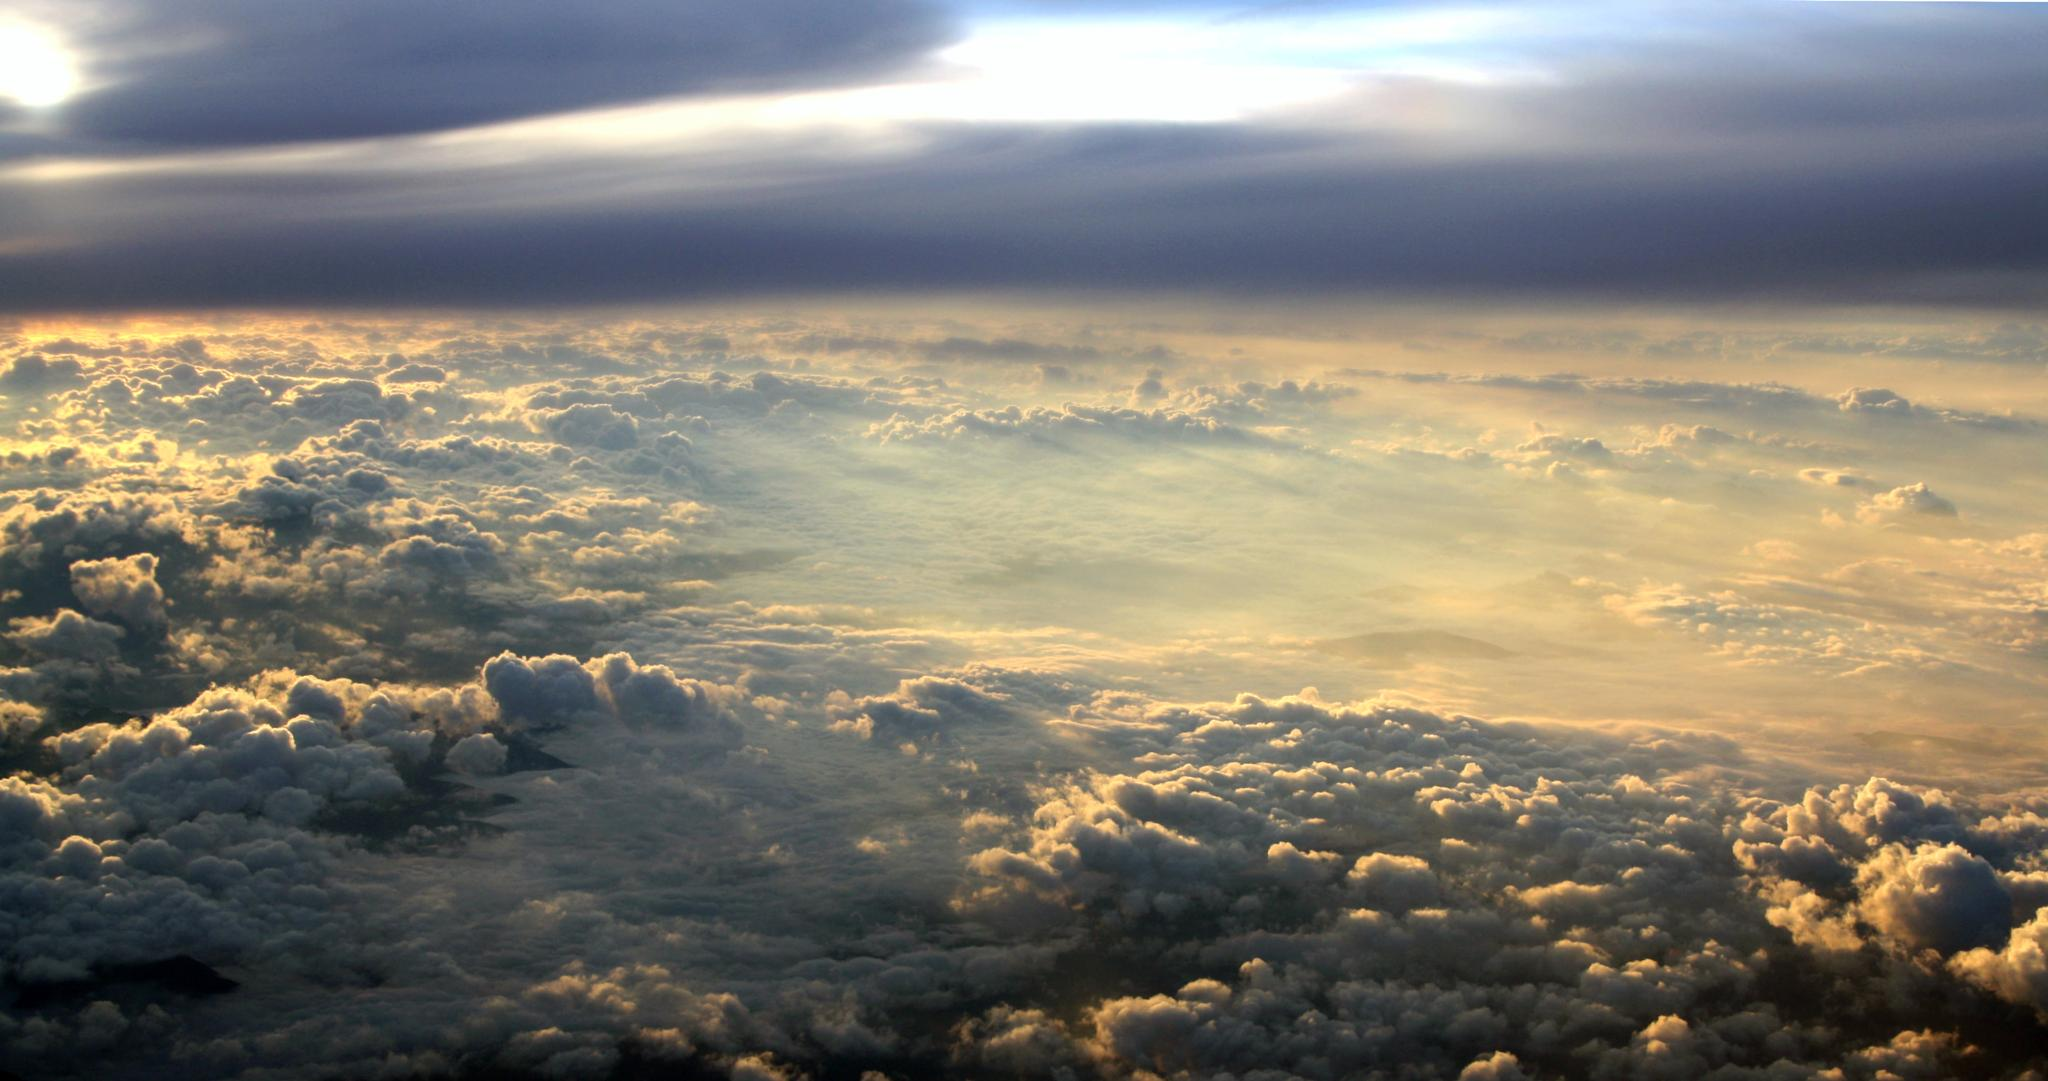 View of the Heavens by Kobus Odendaal